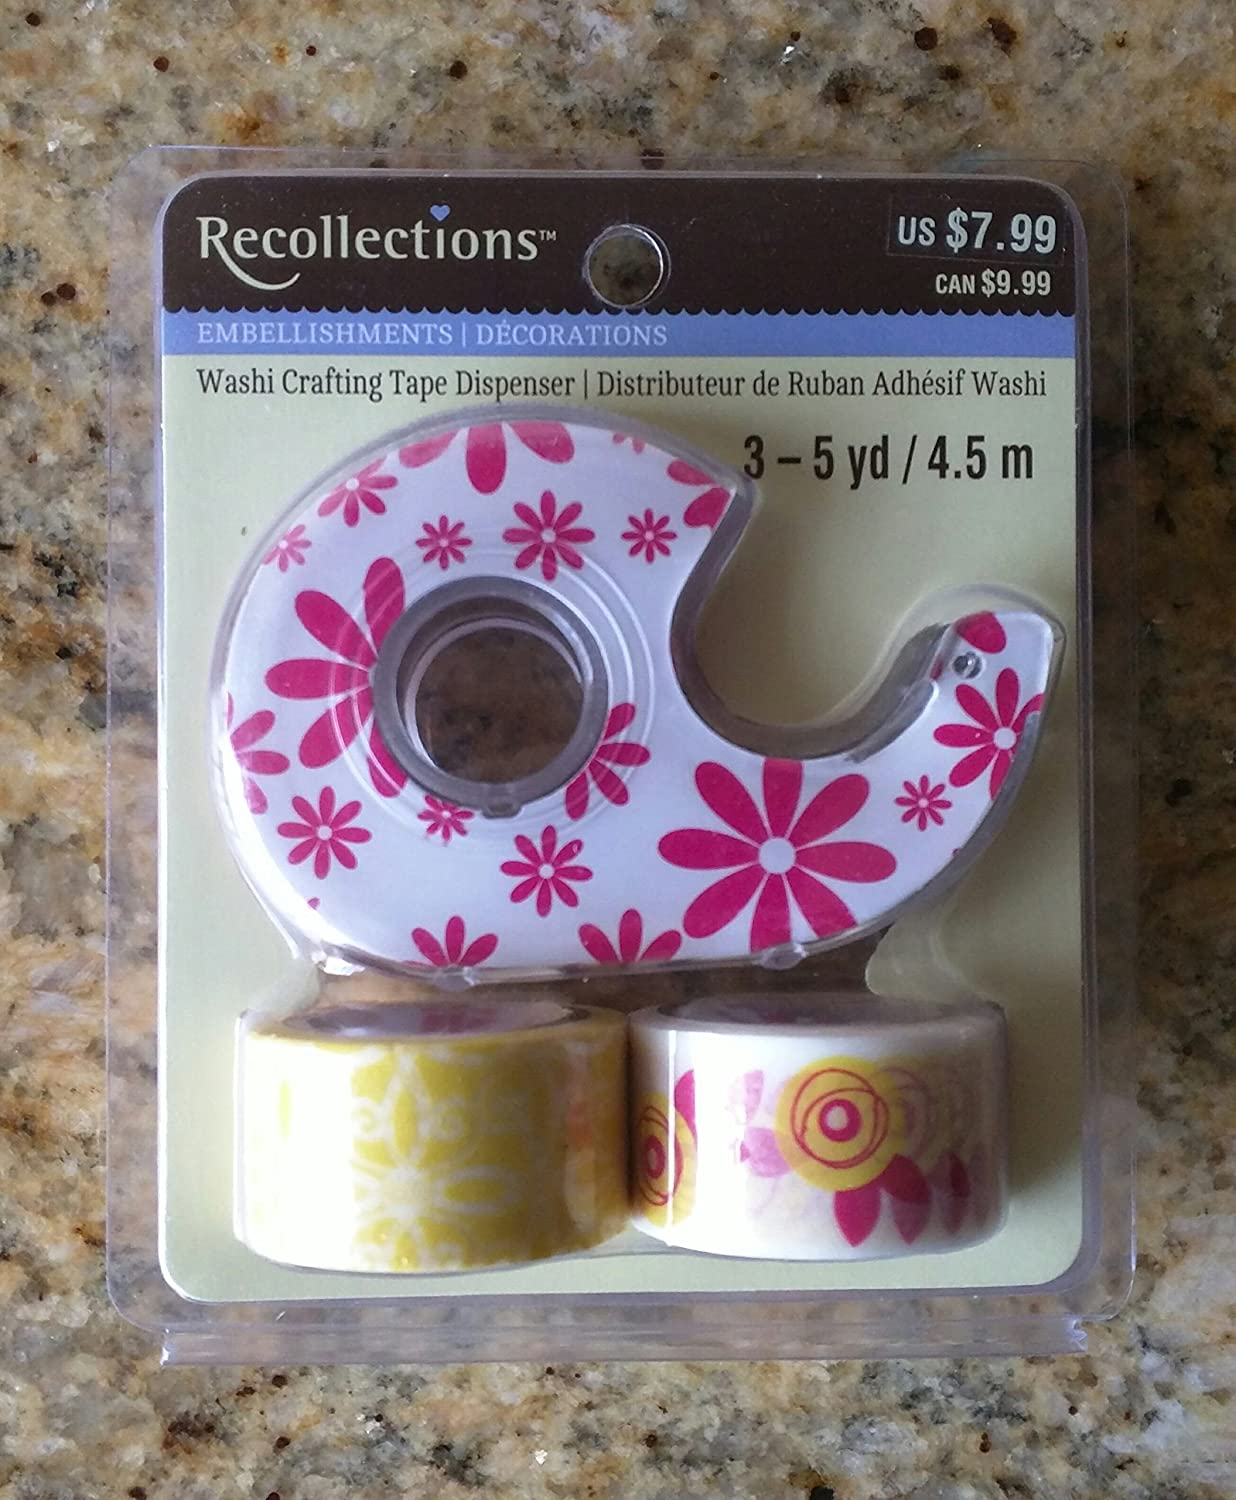 Recollections Washi Crafting Tape - Yellow and Pink